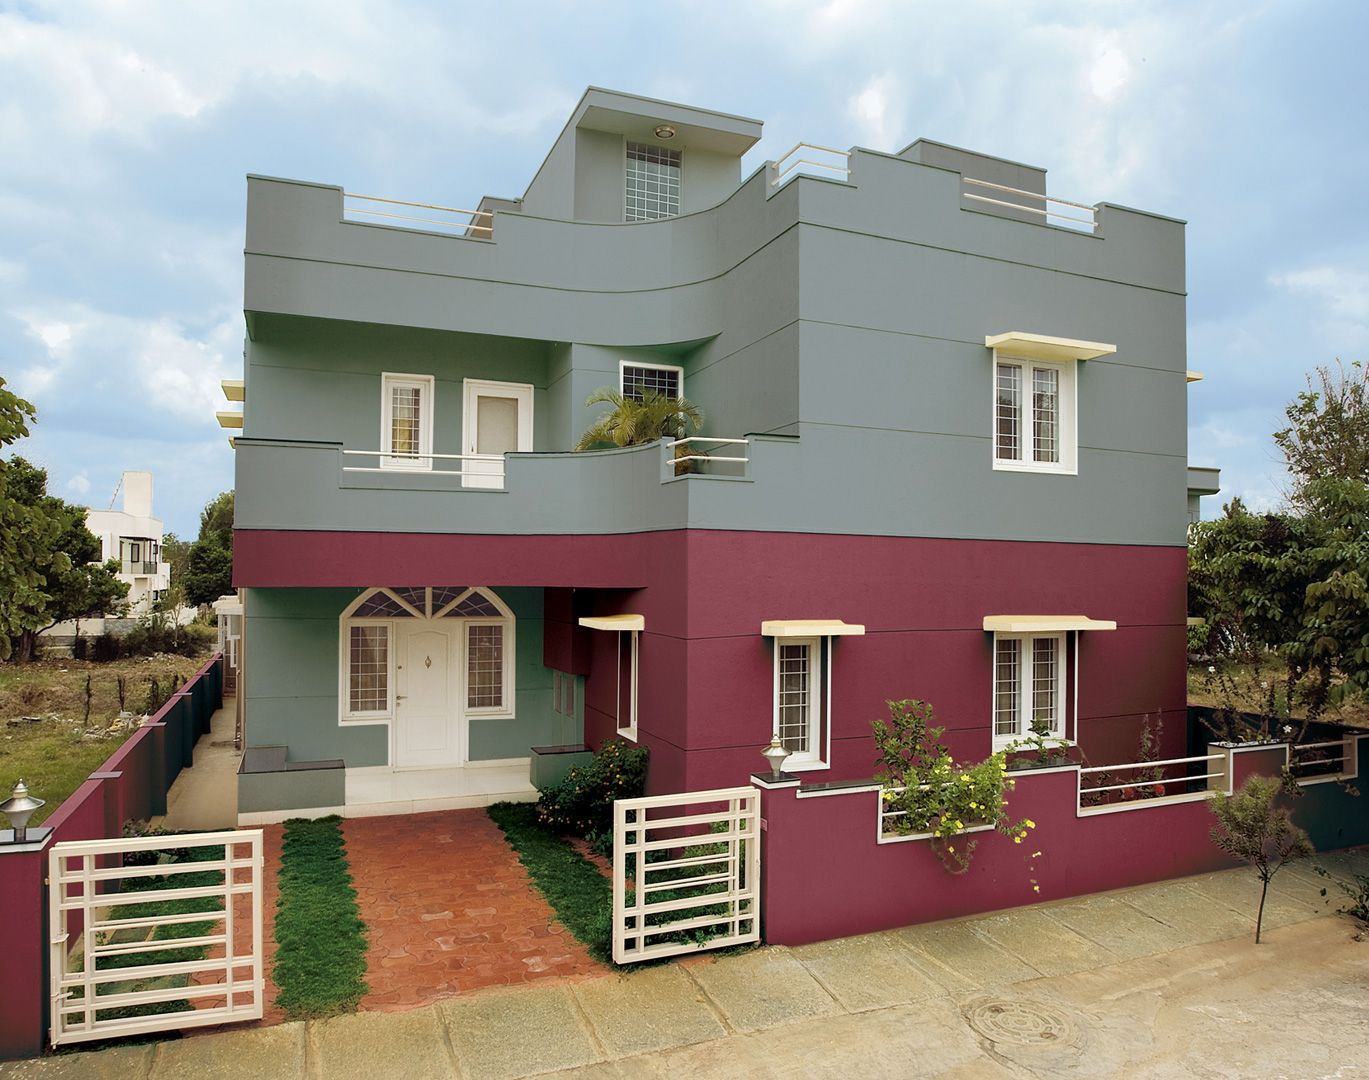 Asian paints apex ultima with colour stay image gallery - Colours for exterior house painting ...